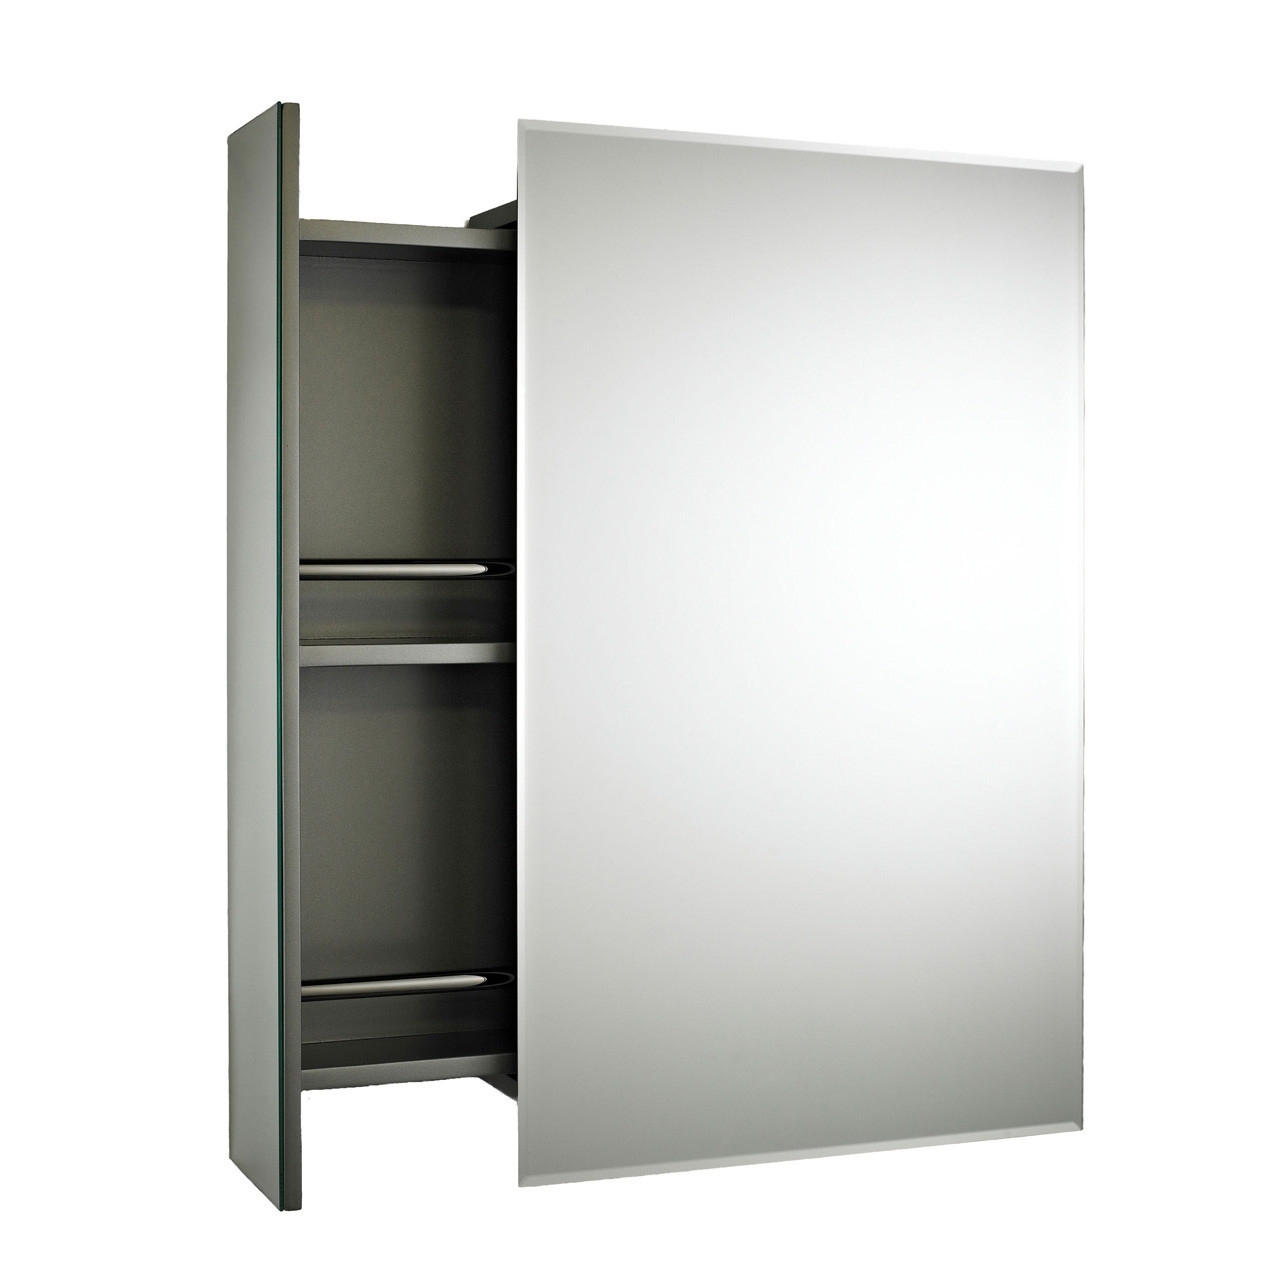 Premier Intrigue Side Open Mirror Cabinet 750mm X 460mm X